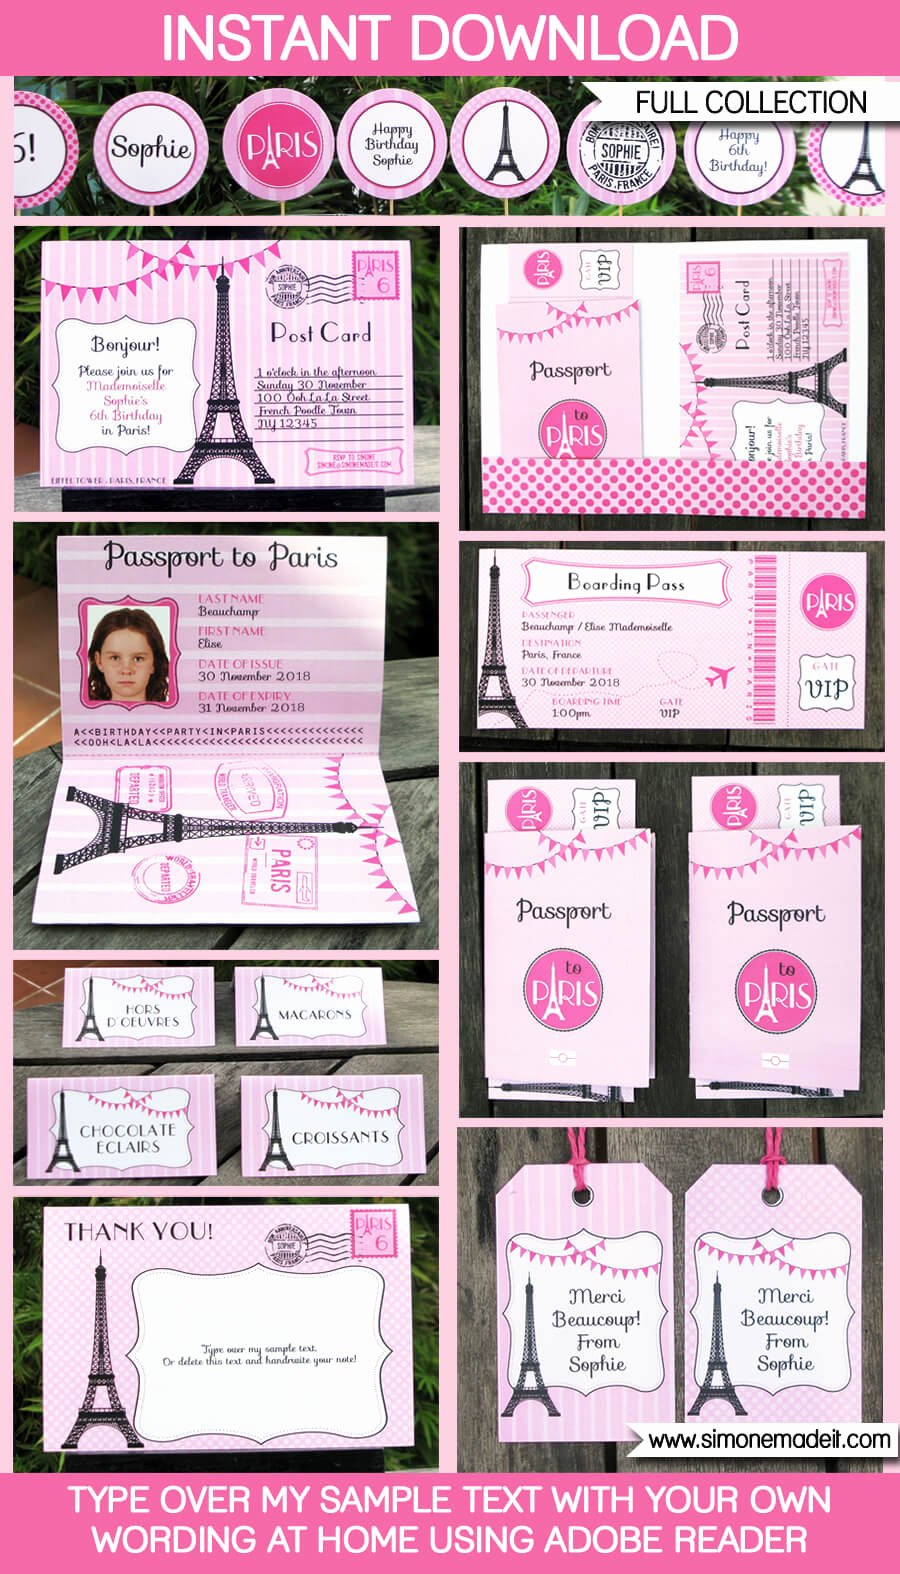 Paris Passport Invitation Template Inspirational Paris Party Printables Invitations & Decorations